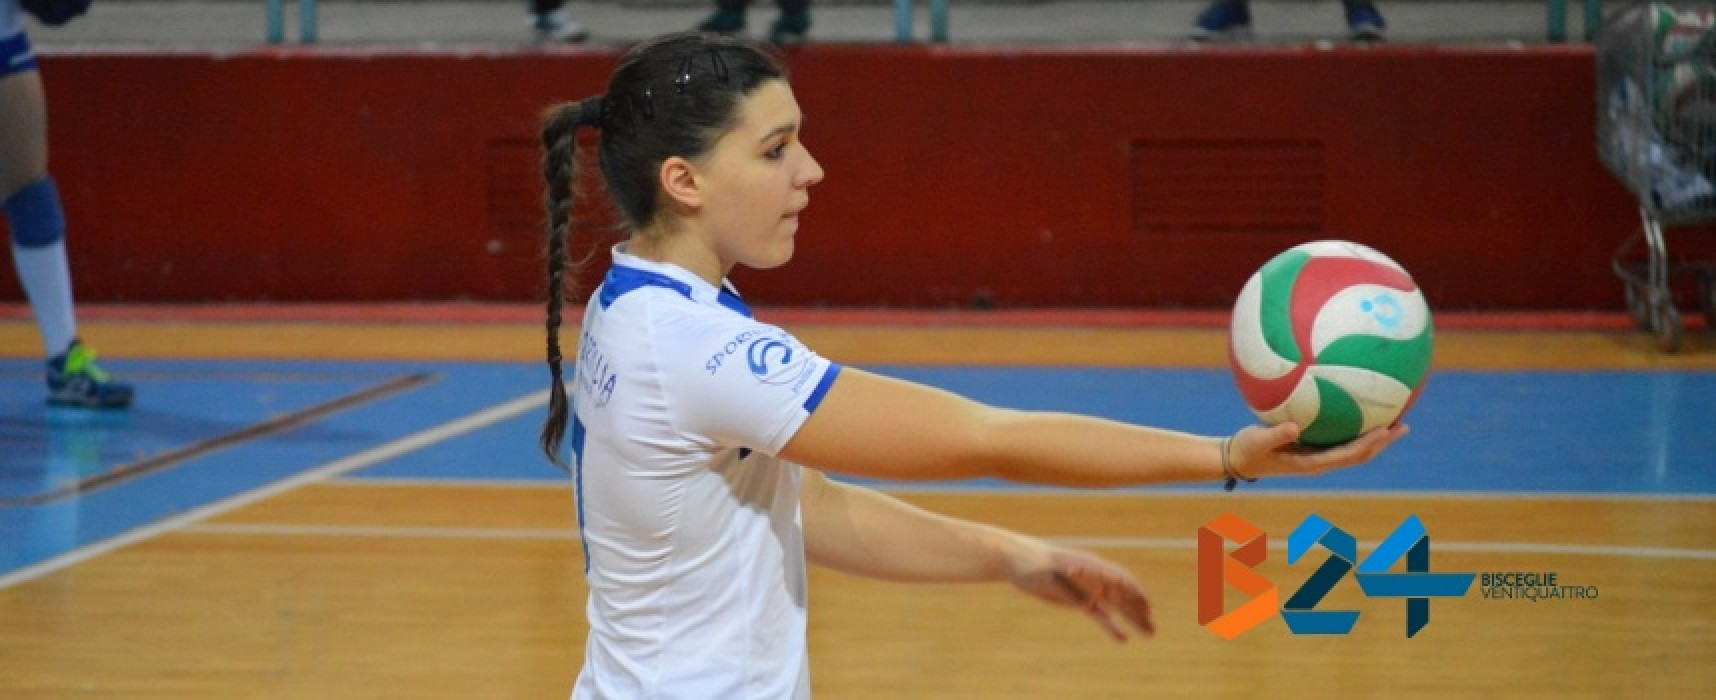 Sportilia Volley, a Corato per ipotecare il discorso play-off